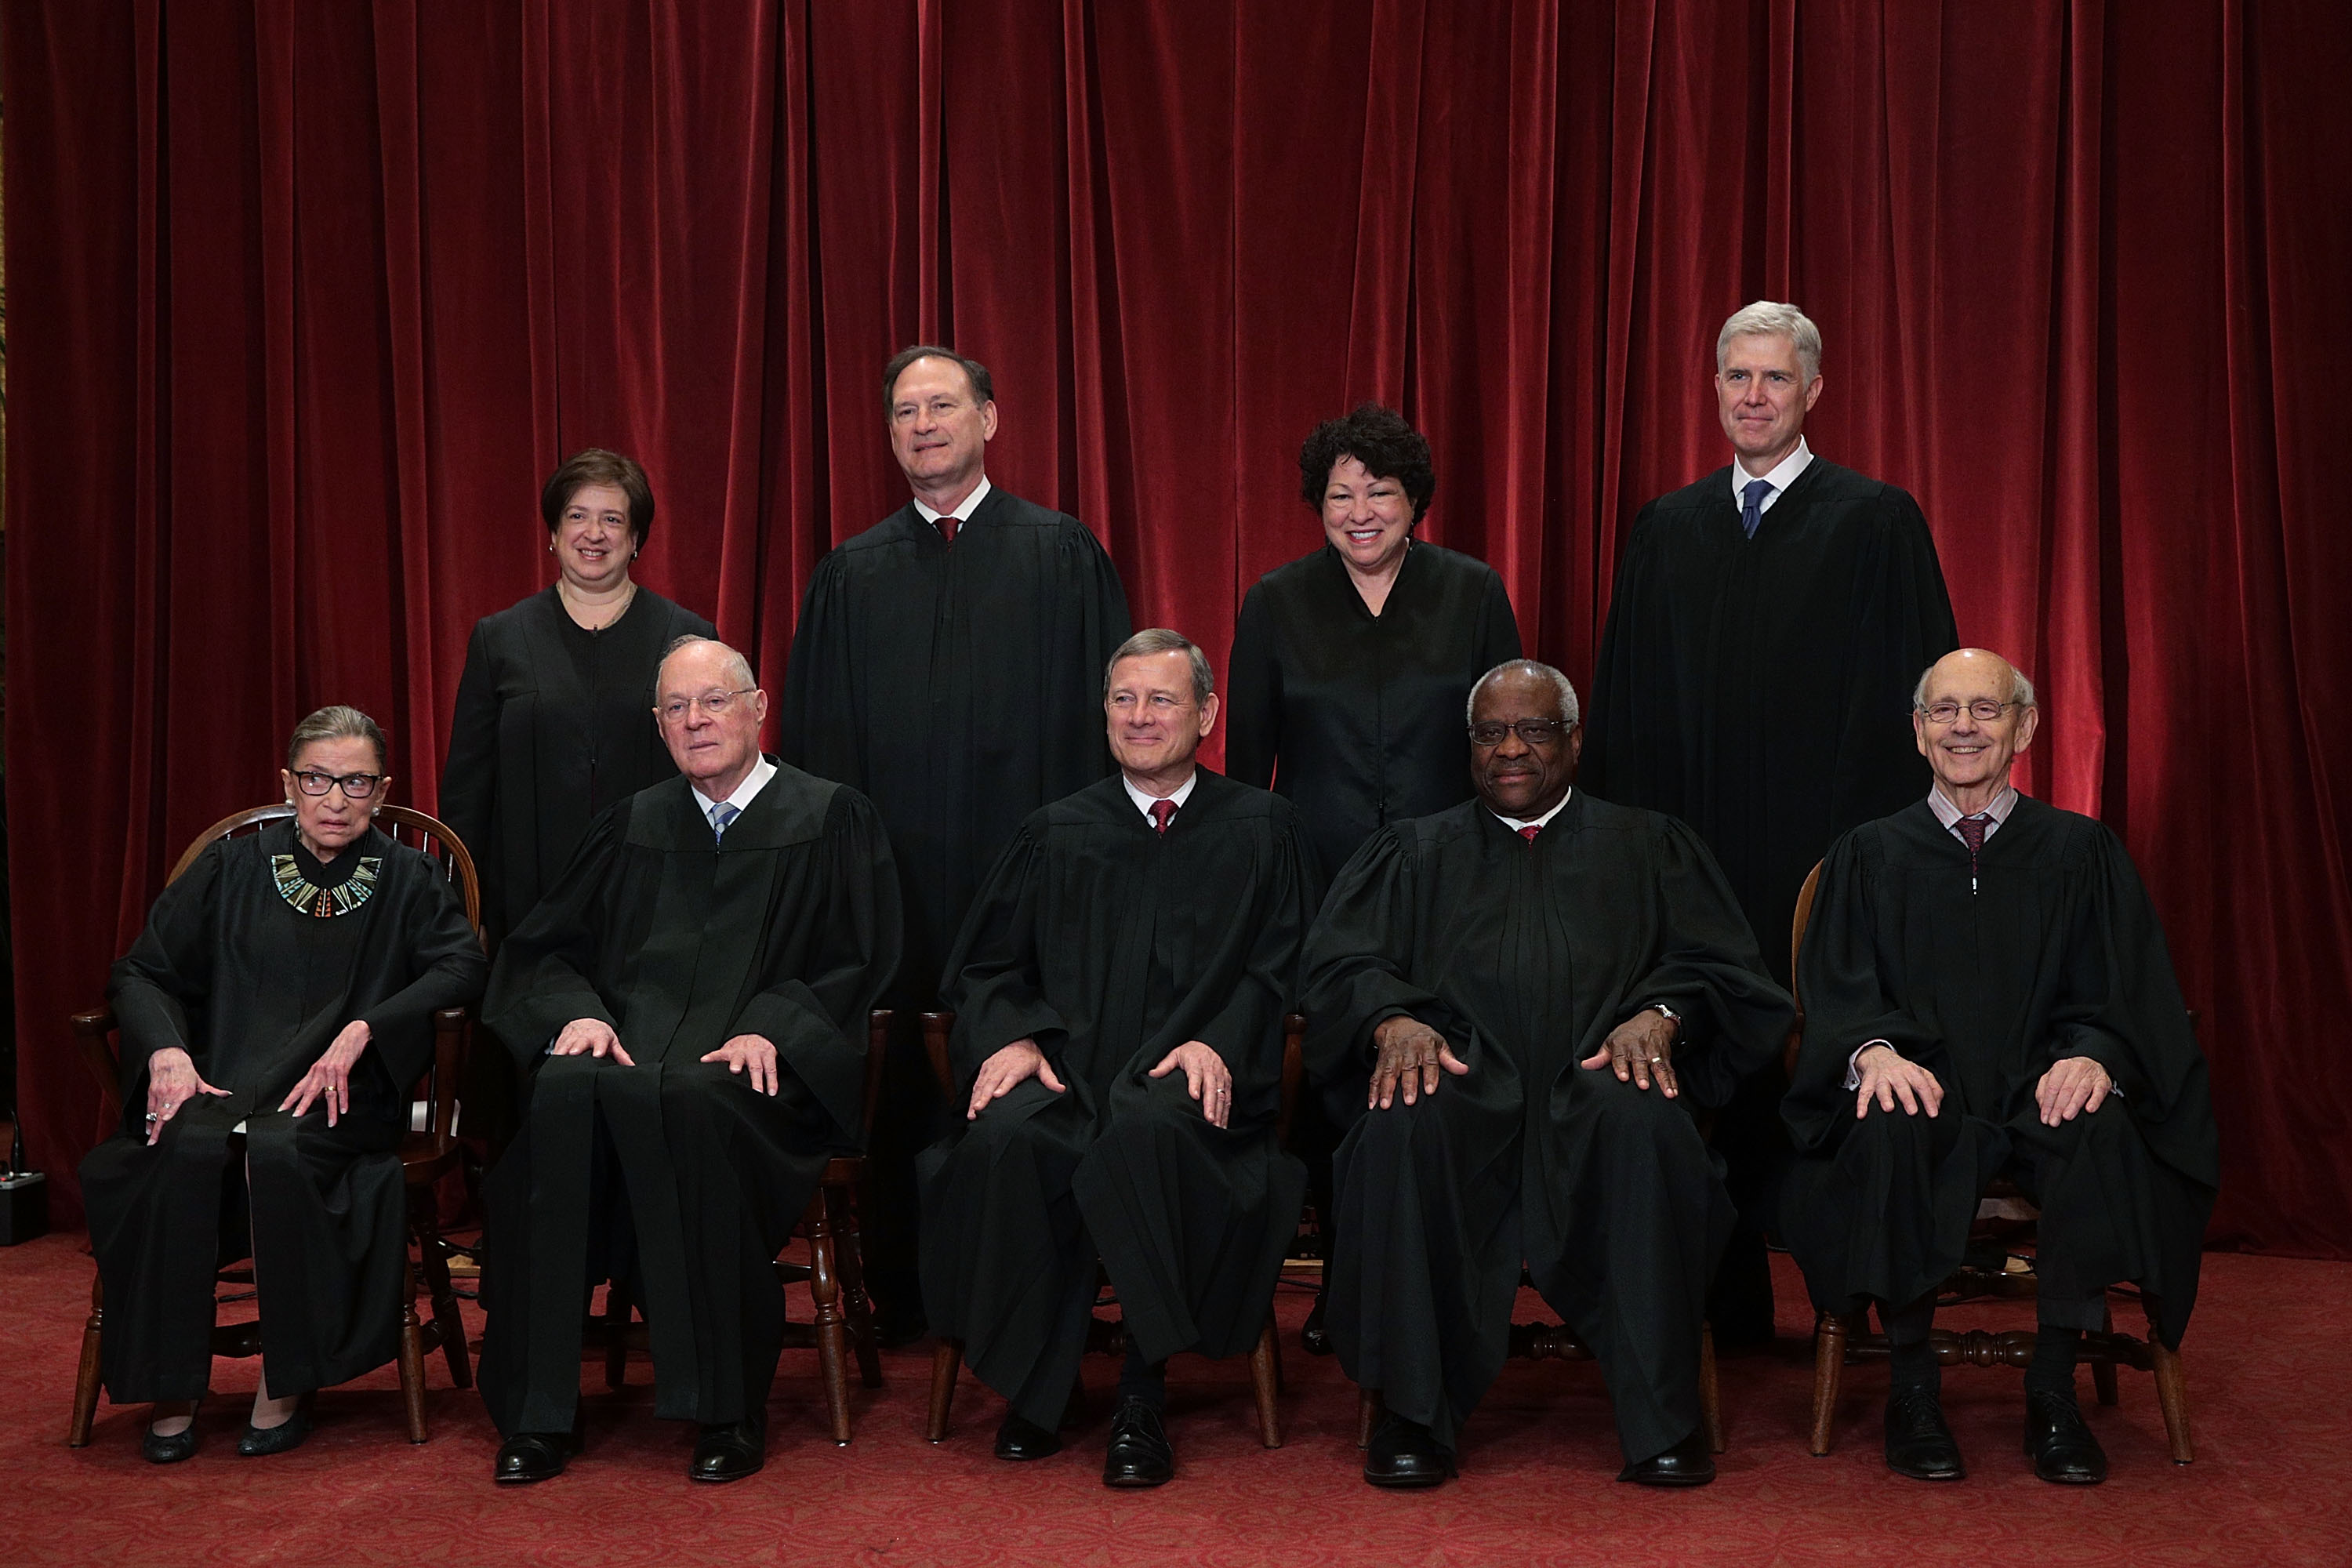 The U.S. Supreme Court held a photo opportunity for photographers after Justice Gorsuch joined as the newest member.